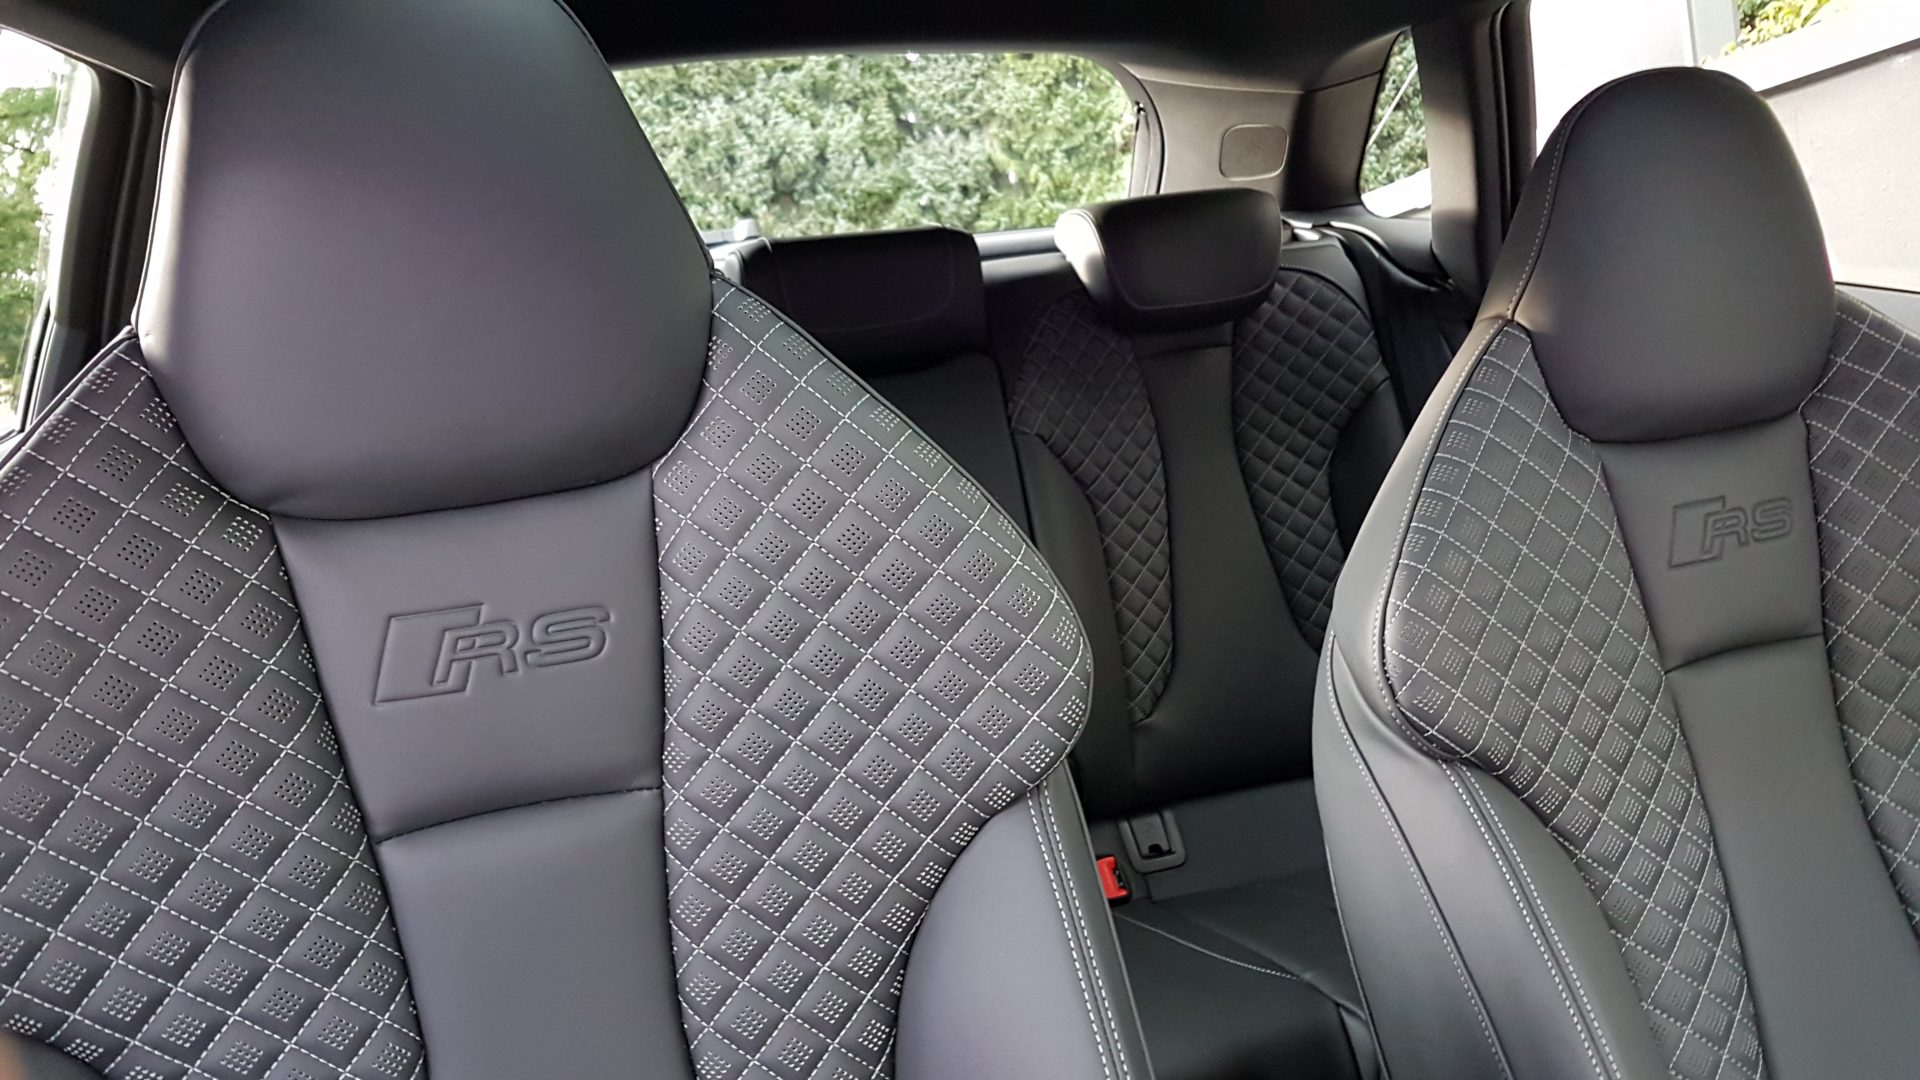 AIL Audi RS3 Sportback Matrix Panorama Virtual Cockpit 9